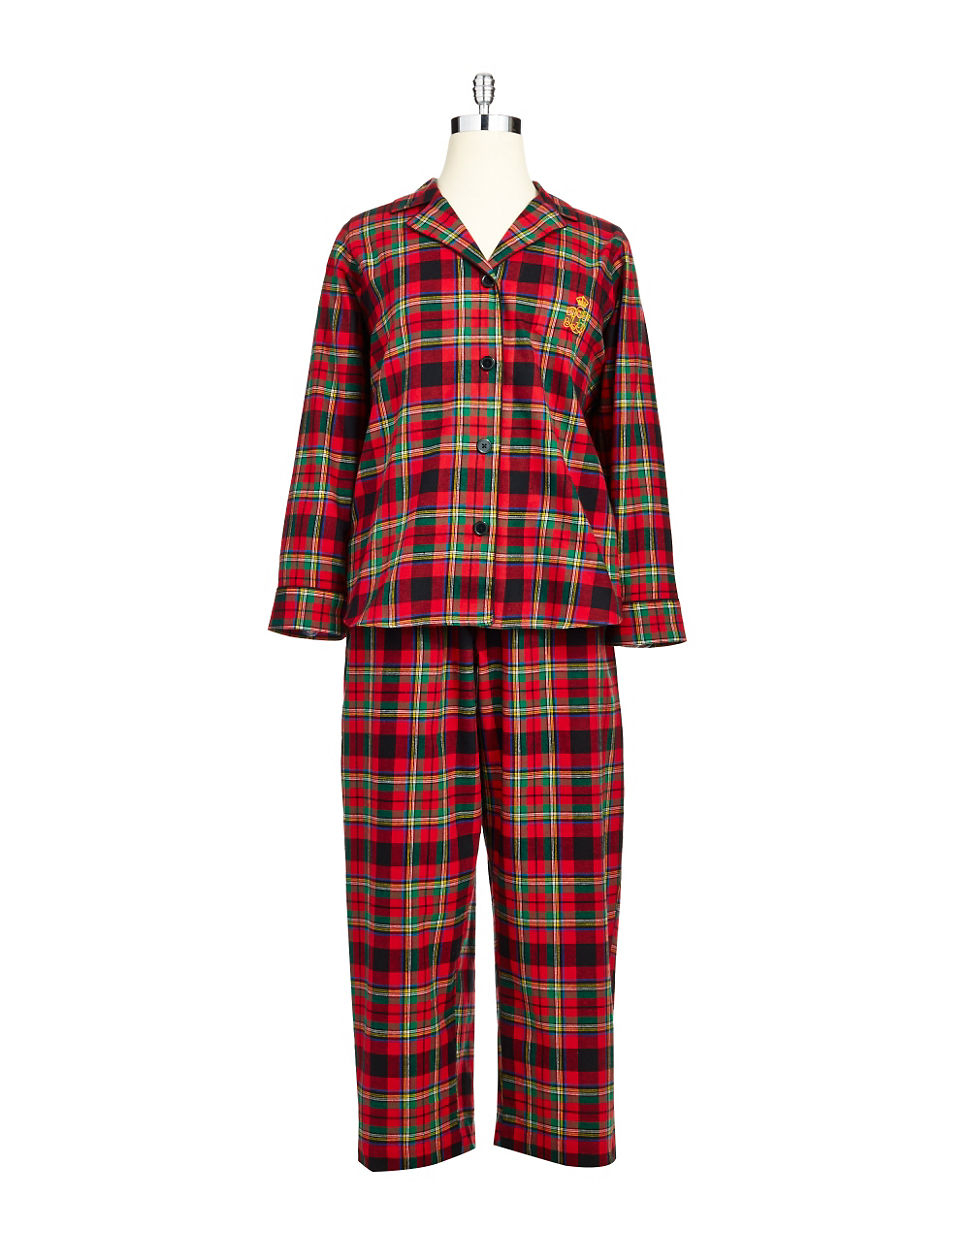 lauren by ralph lauren longsleeve classic notch collar pajama set in red bleeker plaid lyst. Black Bedroom Furniture Sets. Home Design Ideas